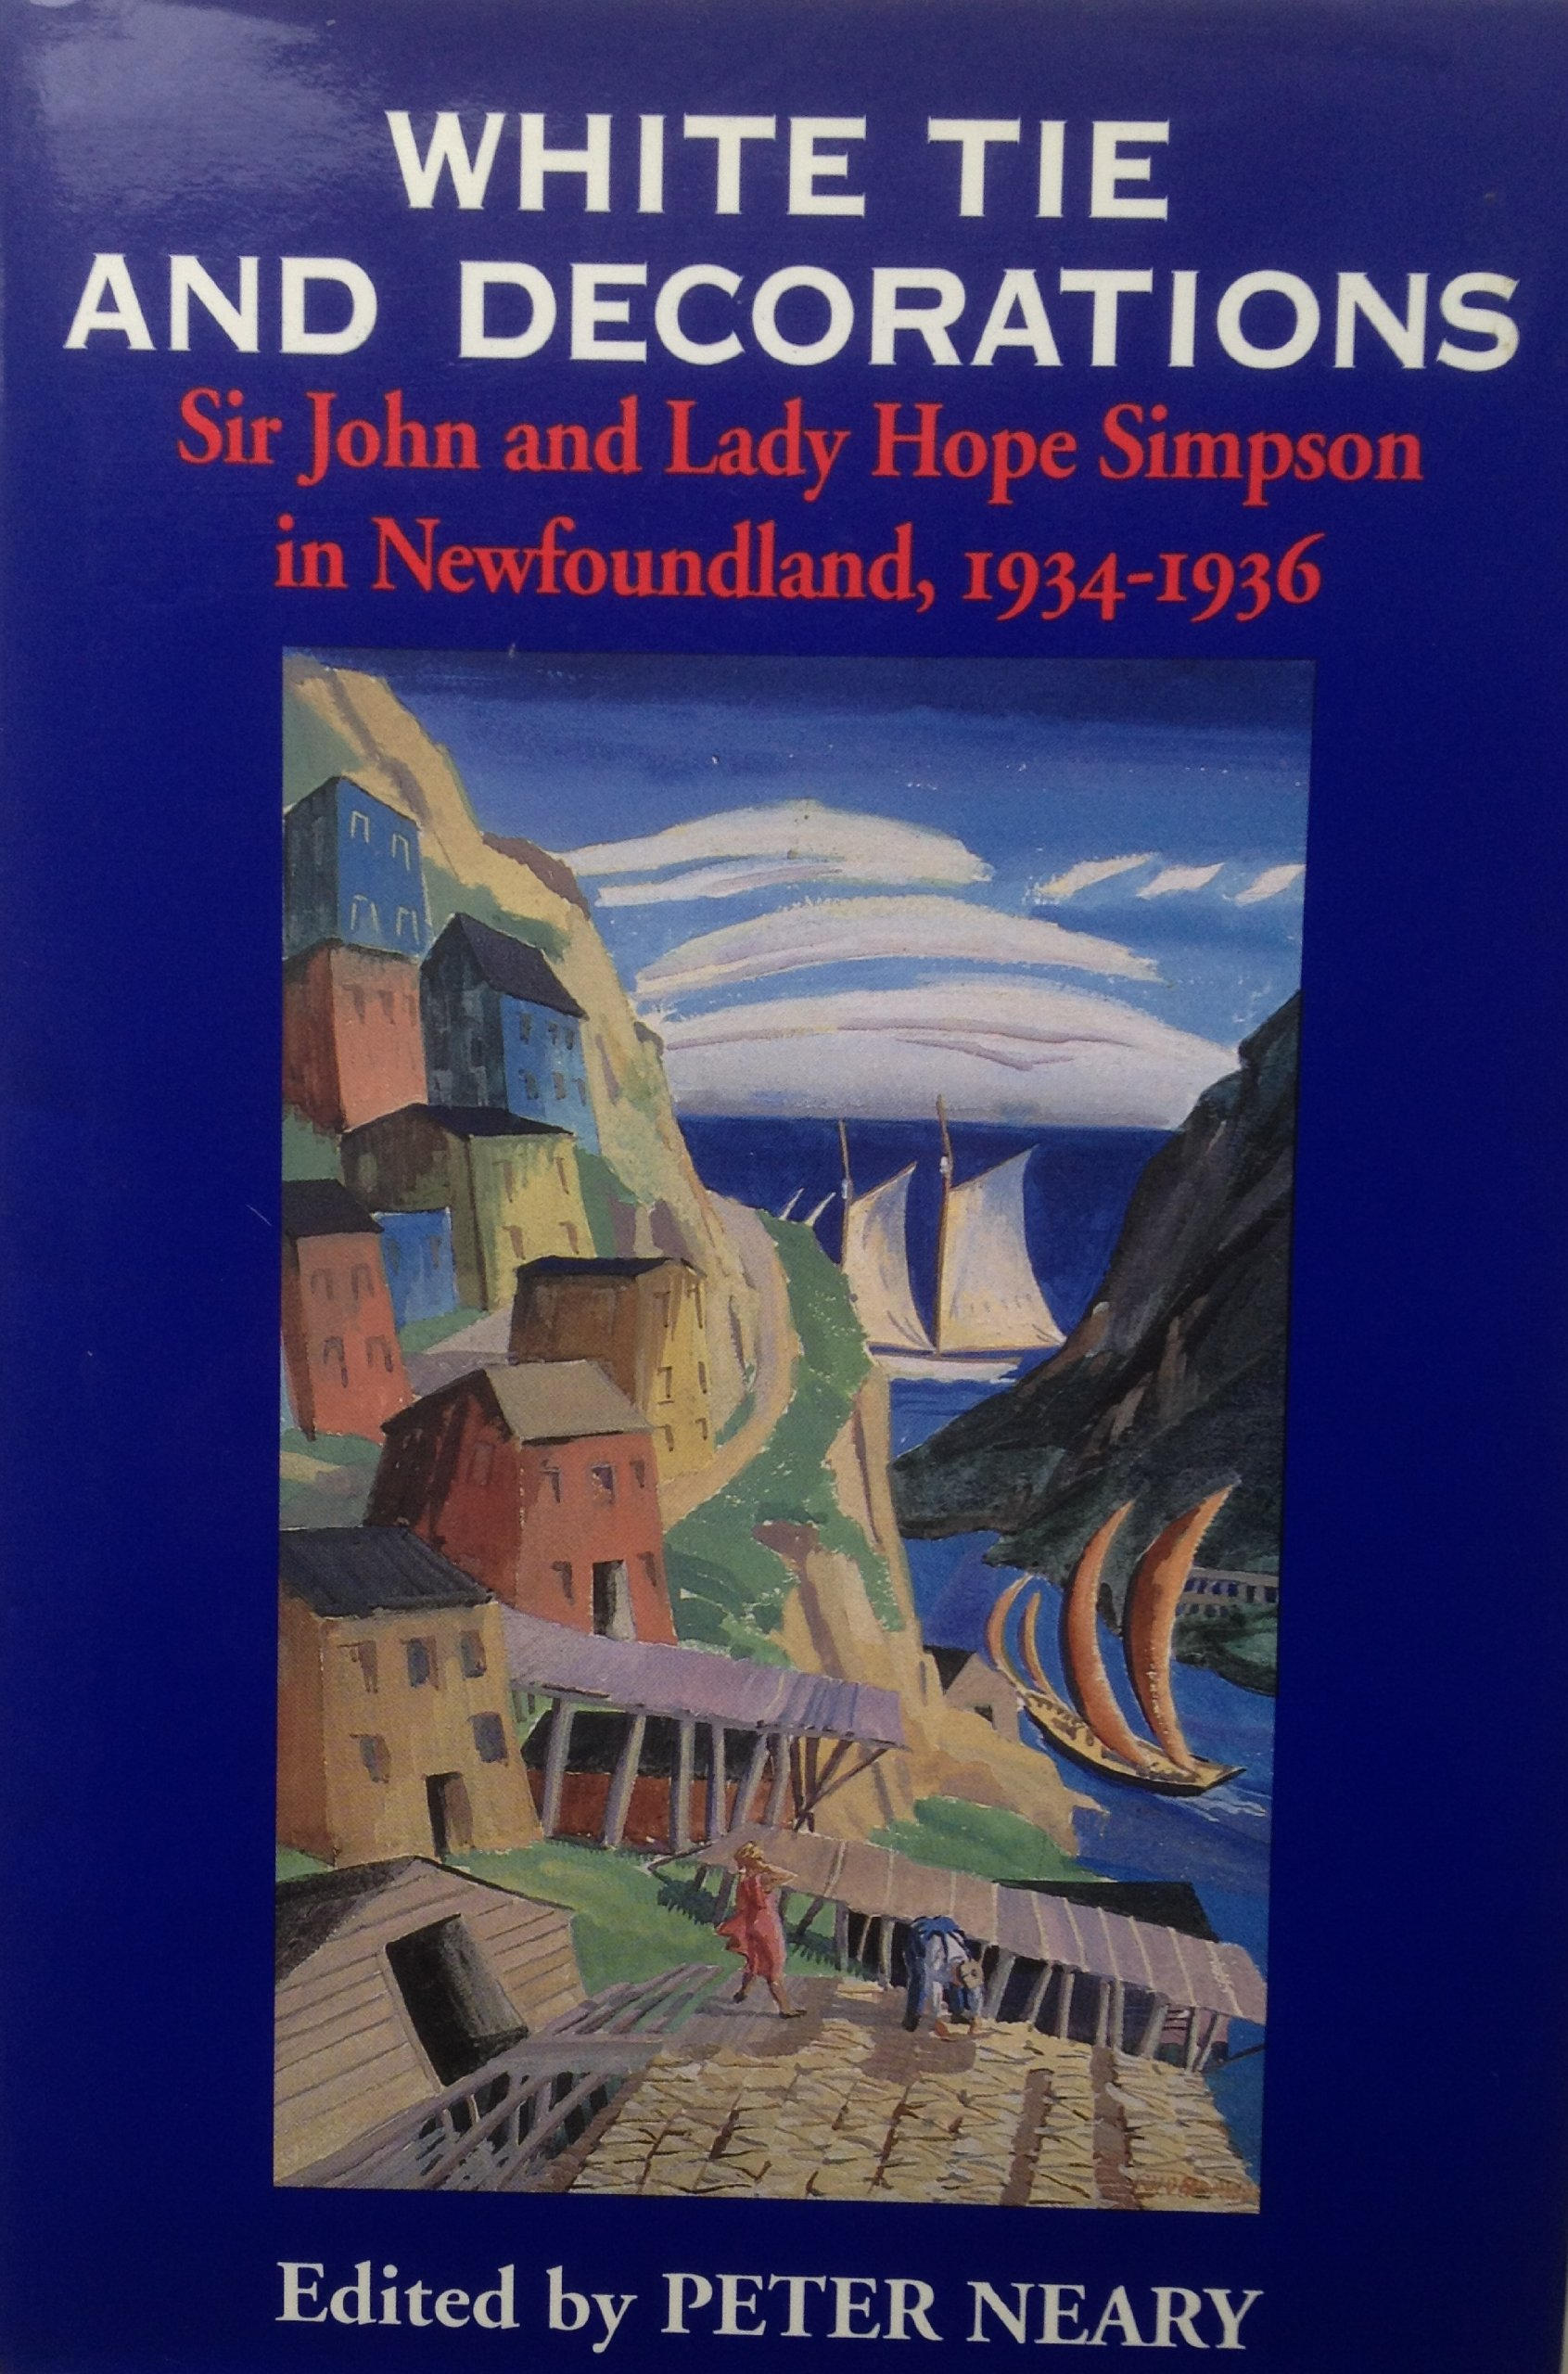 White Tie and Decorations: Sir John and Lady Hope Simpson in Newfoundland, 1934-1936